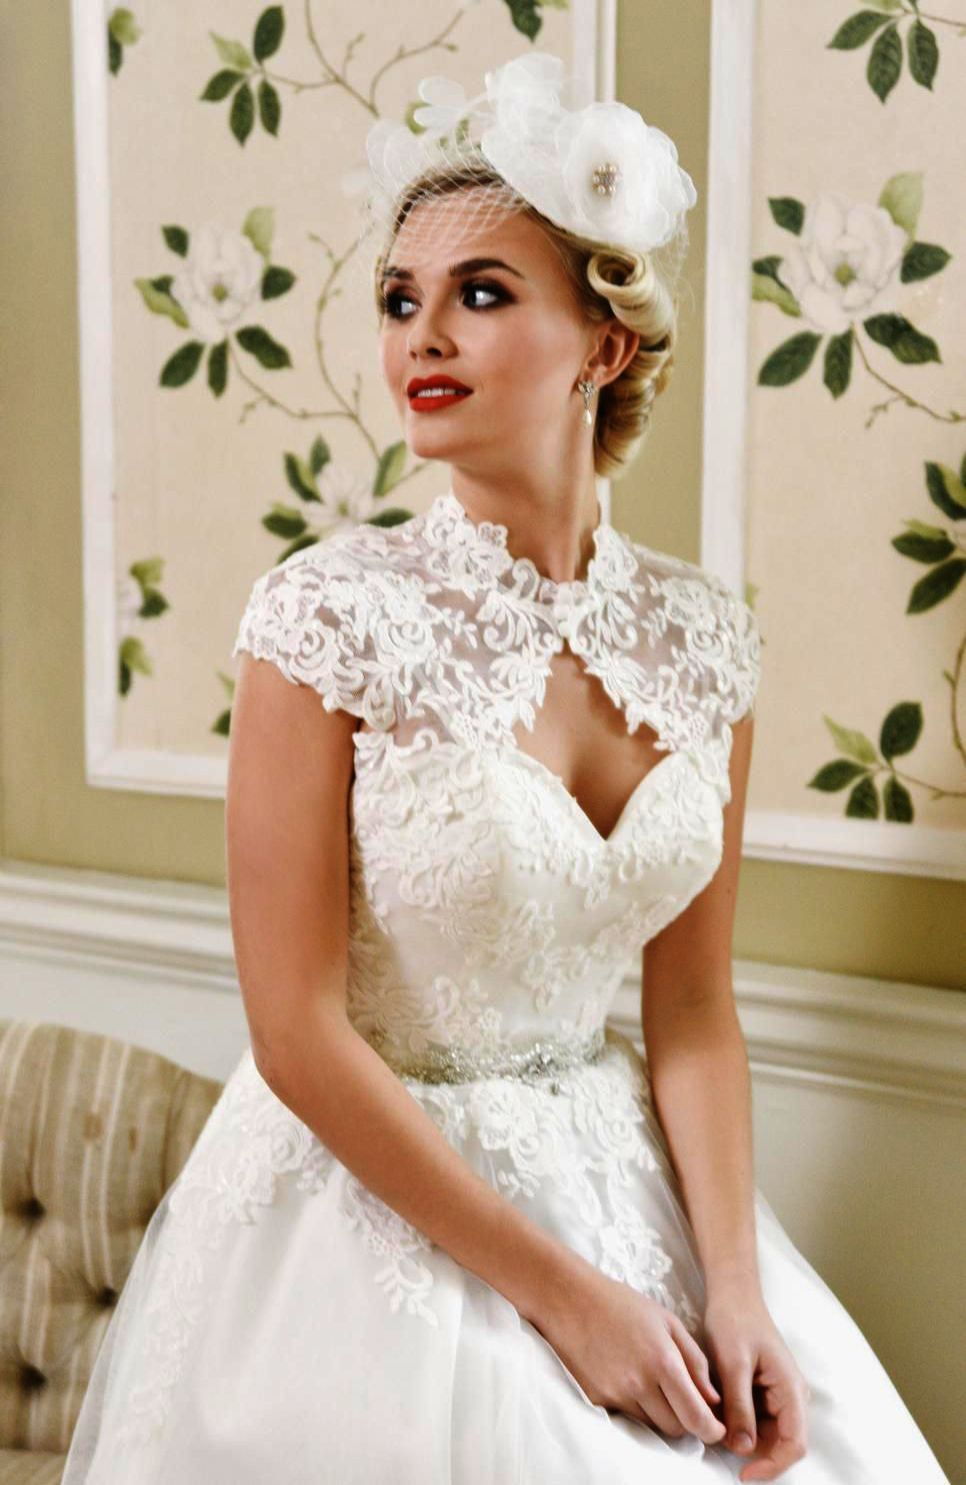 London Dress Up Games Fashion Show When Dress Up Games For Adults Who Love Fashion 1950s Style Wedding Dresses Pinup Wedding Dress 50s Style Wedding Dress [ 1485 x 966 Pixel ]